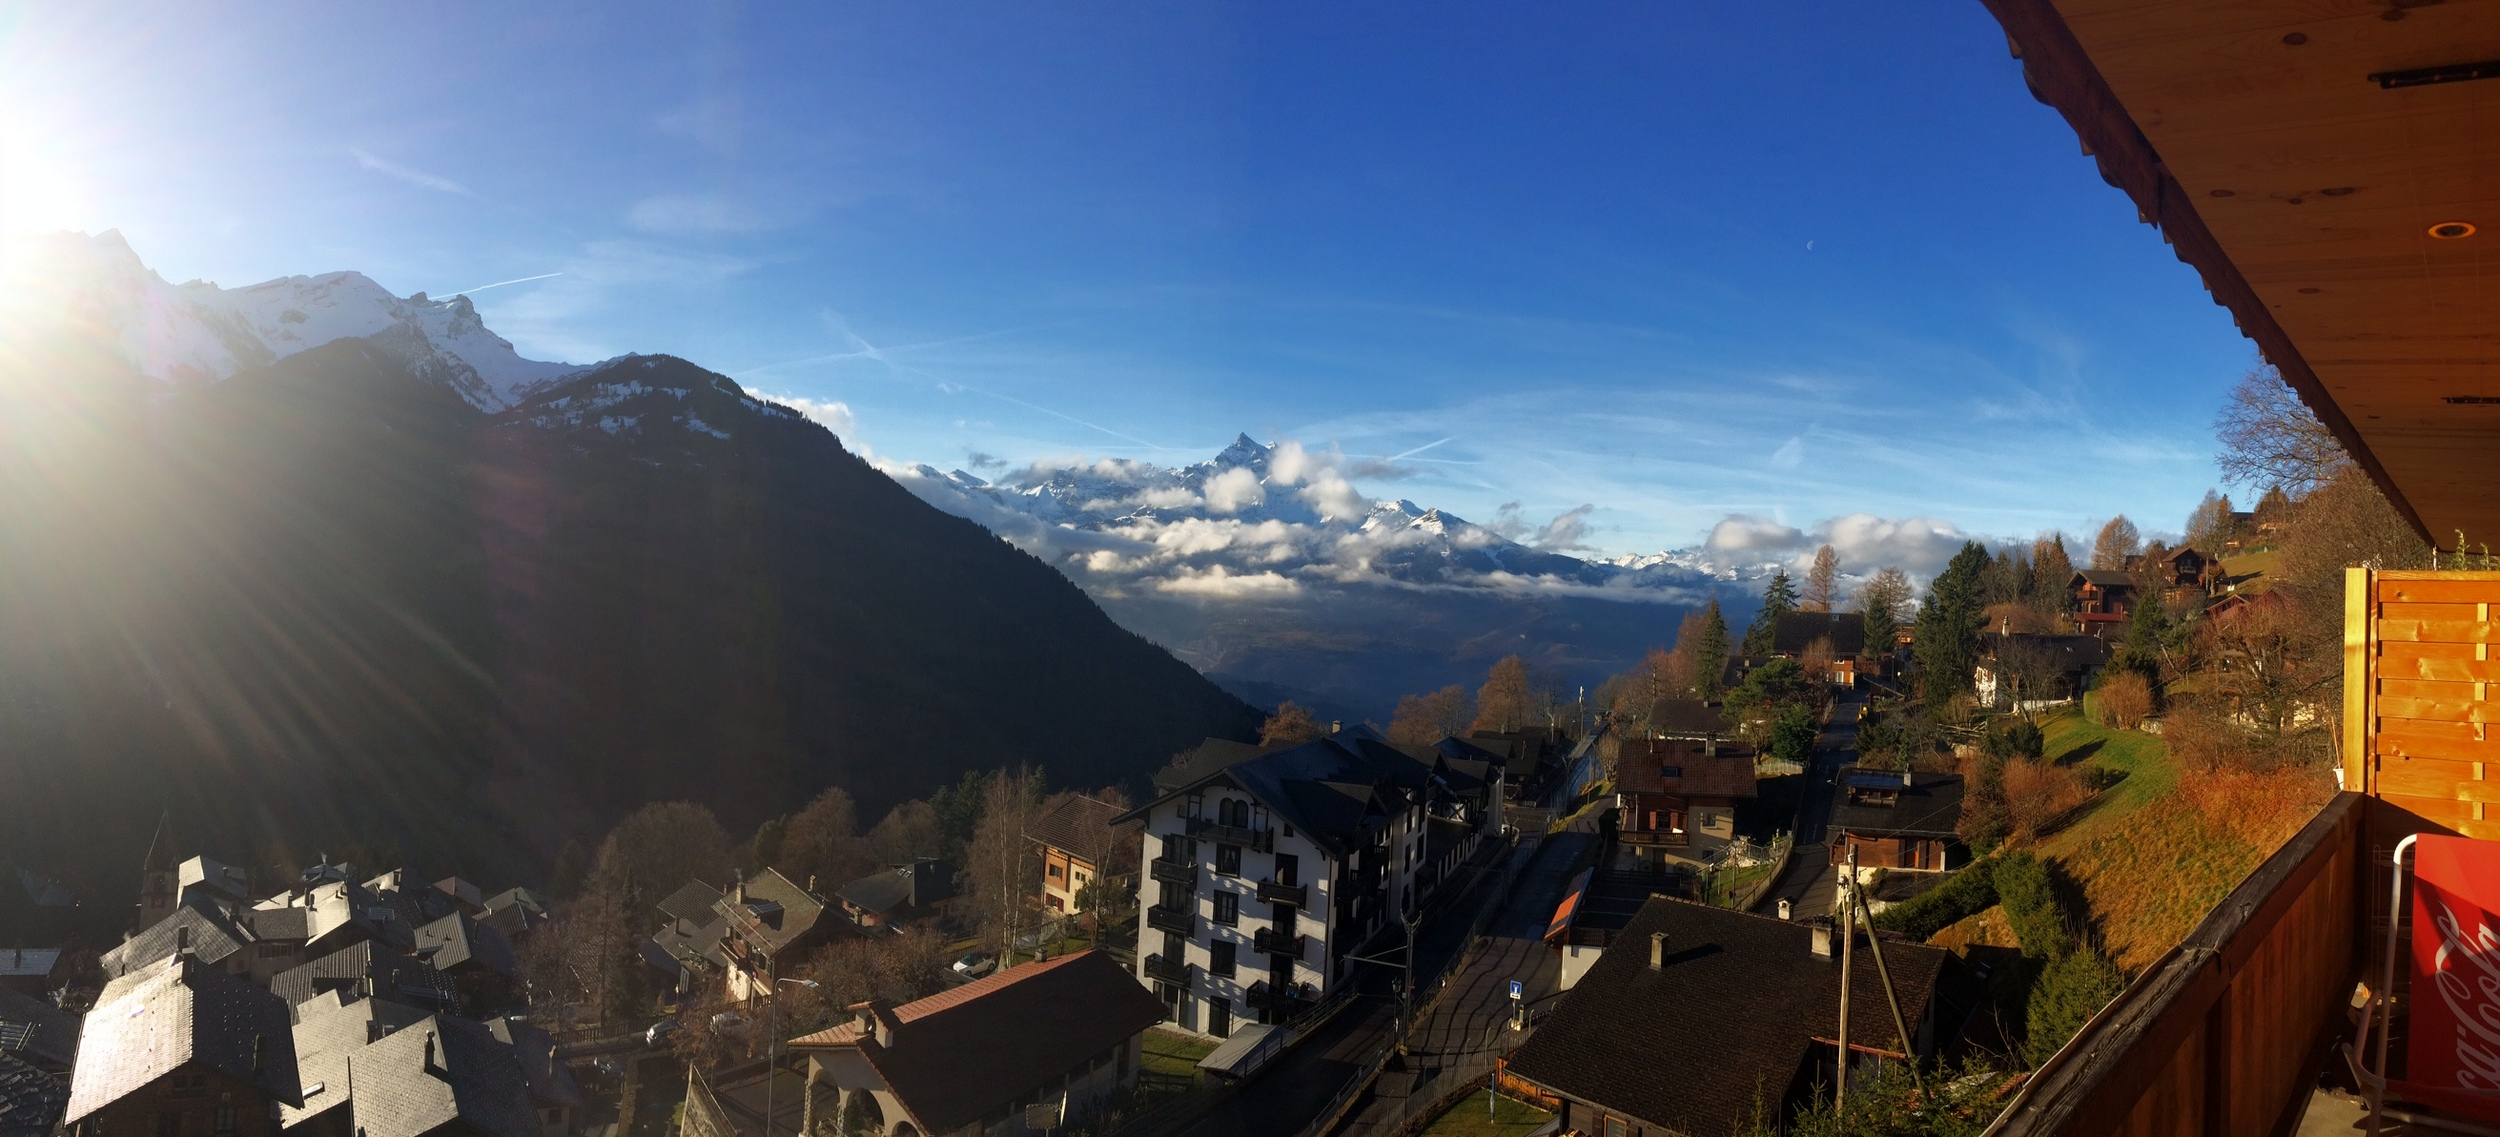 Bonjour from one of the most stunning sanctuaries in my travel arsenal: Gryon, Switzerland.